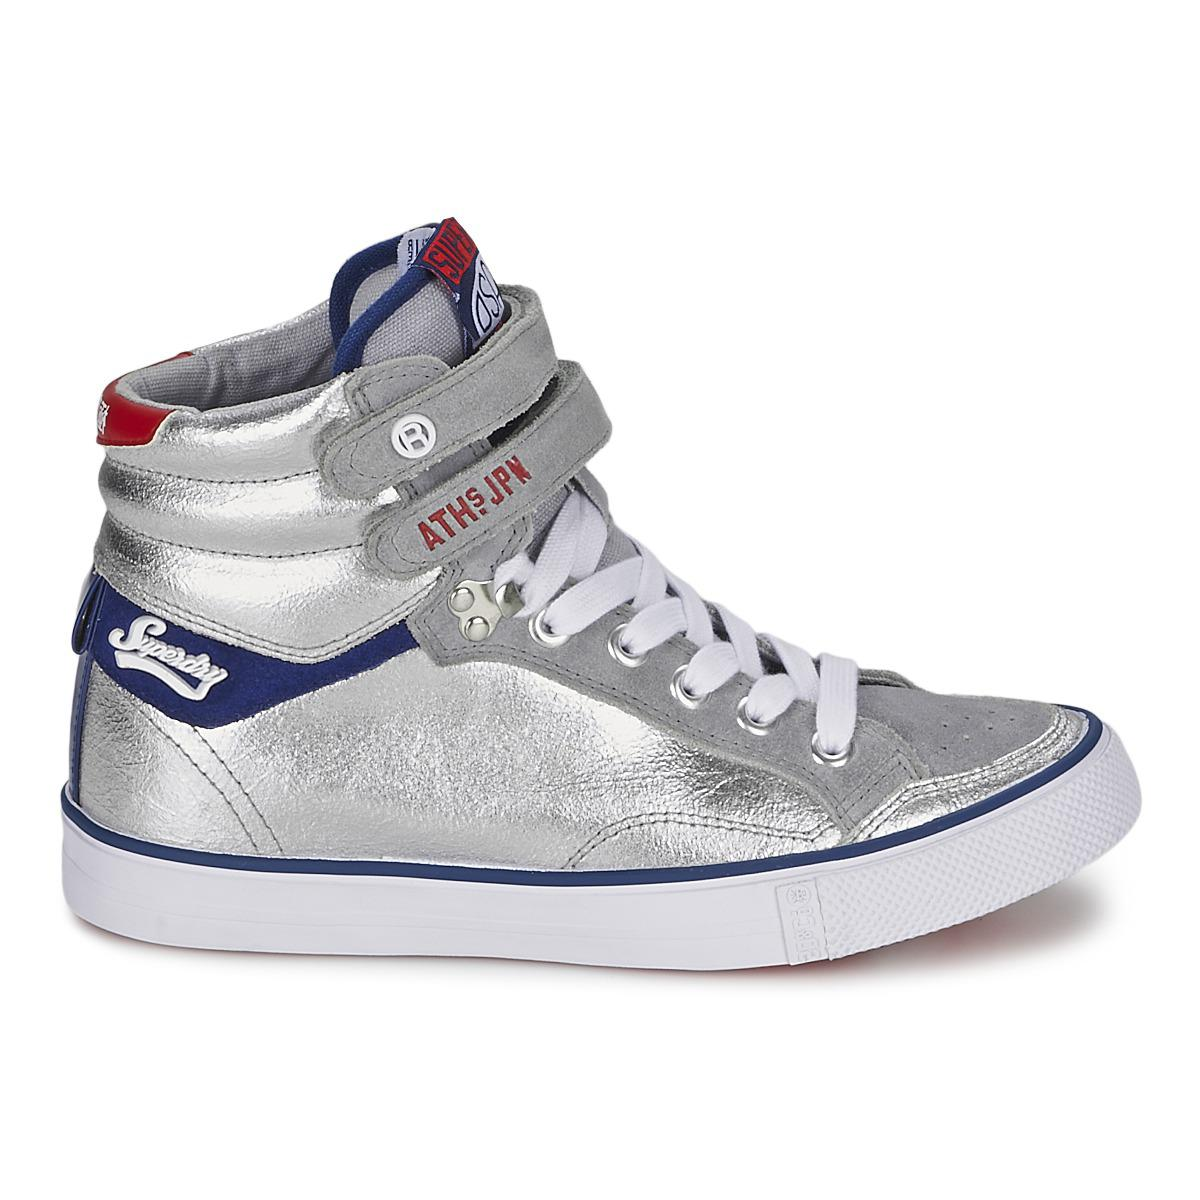 Superdry Leather Nano Crampon Sneaker Women's Shoes (high-top Trainers) In Silver in Metallic